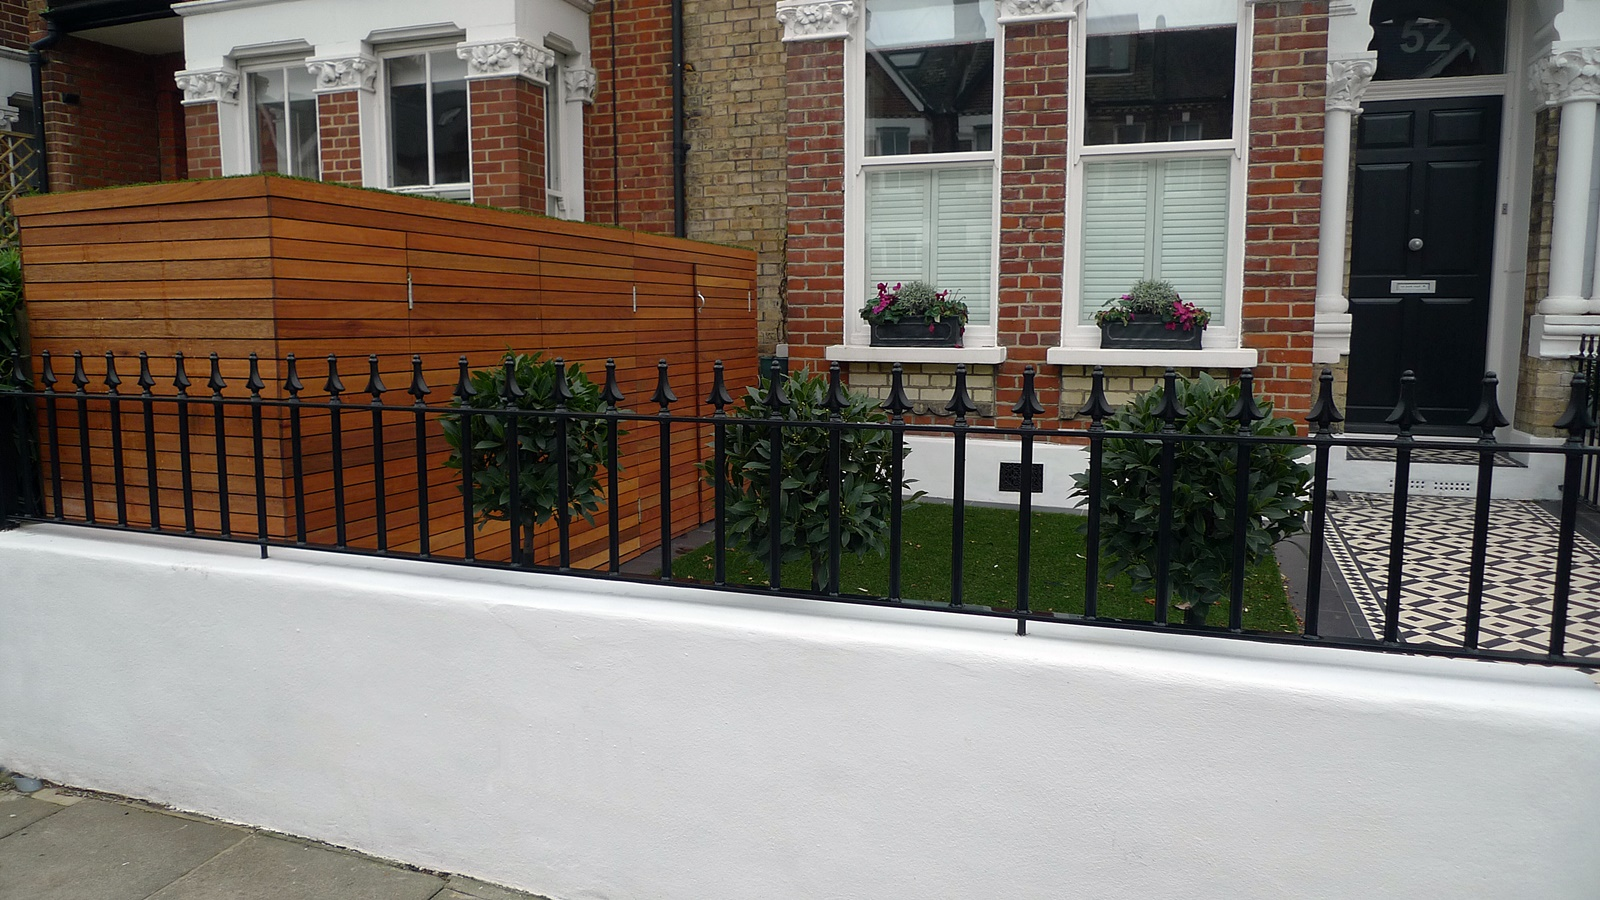 front garden design clapham london victorian mosaic tile path render  metal wrought iron rail topiary bay and bespoke hardwood bike and bin store wandsworth chelsea kensington battersea